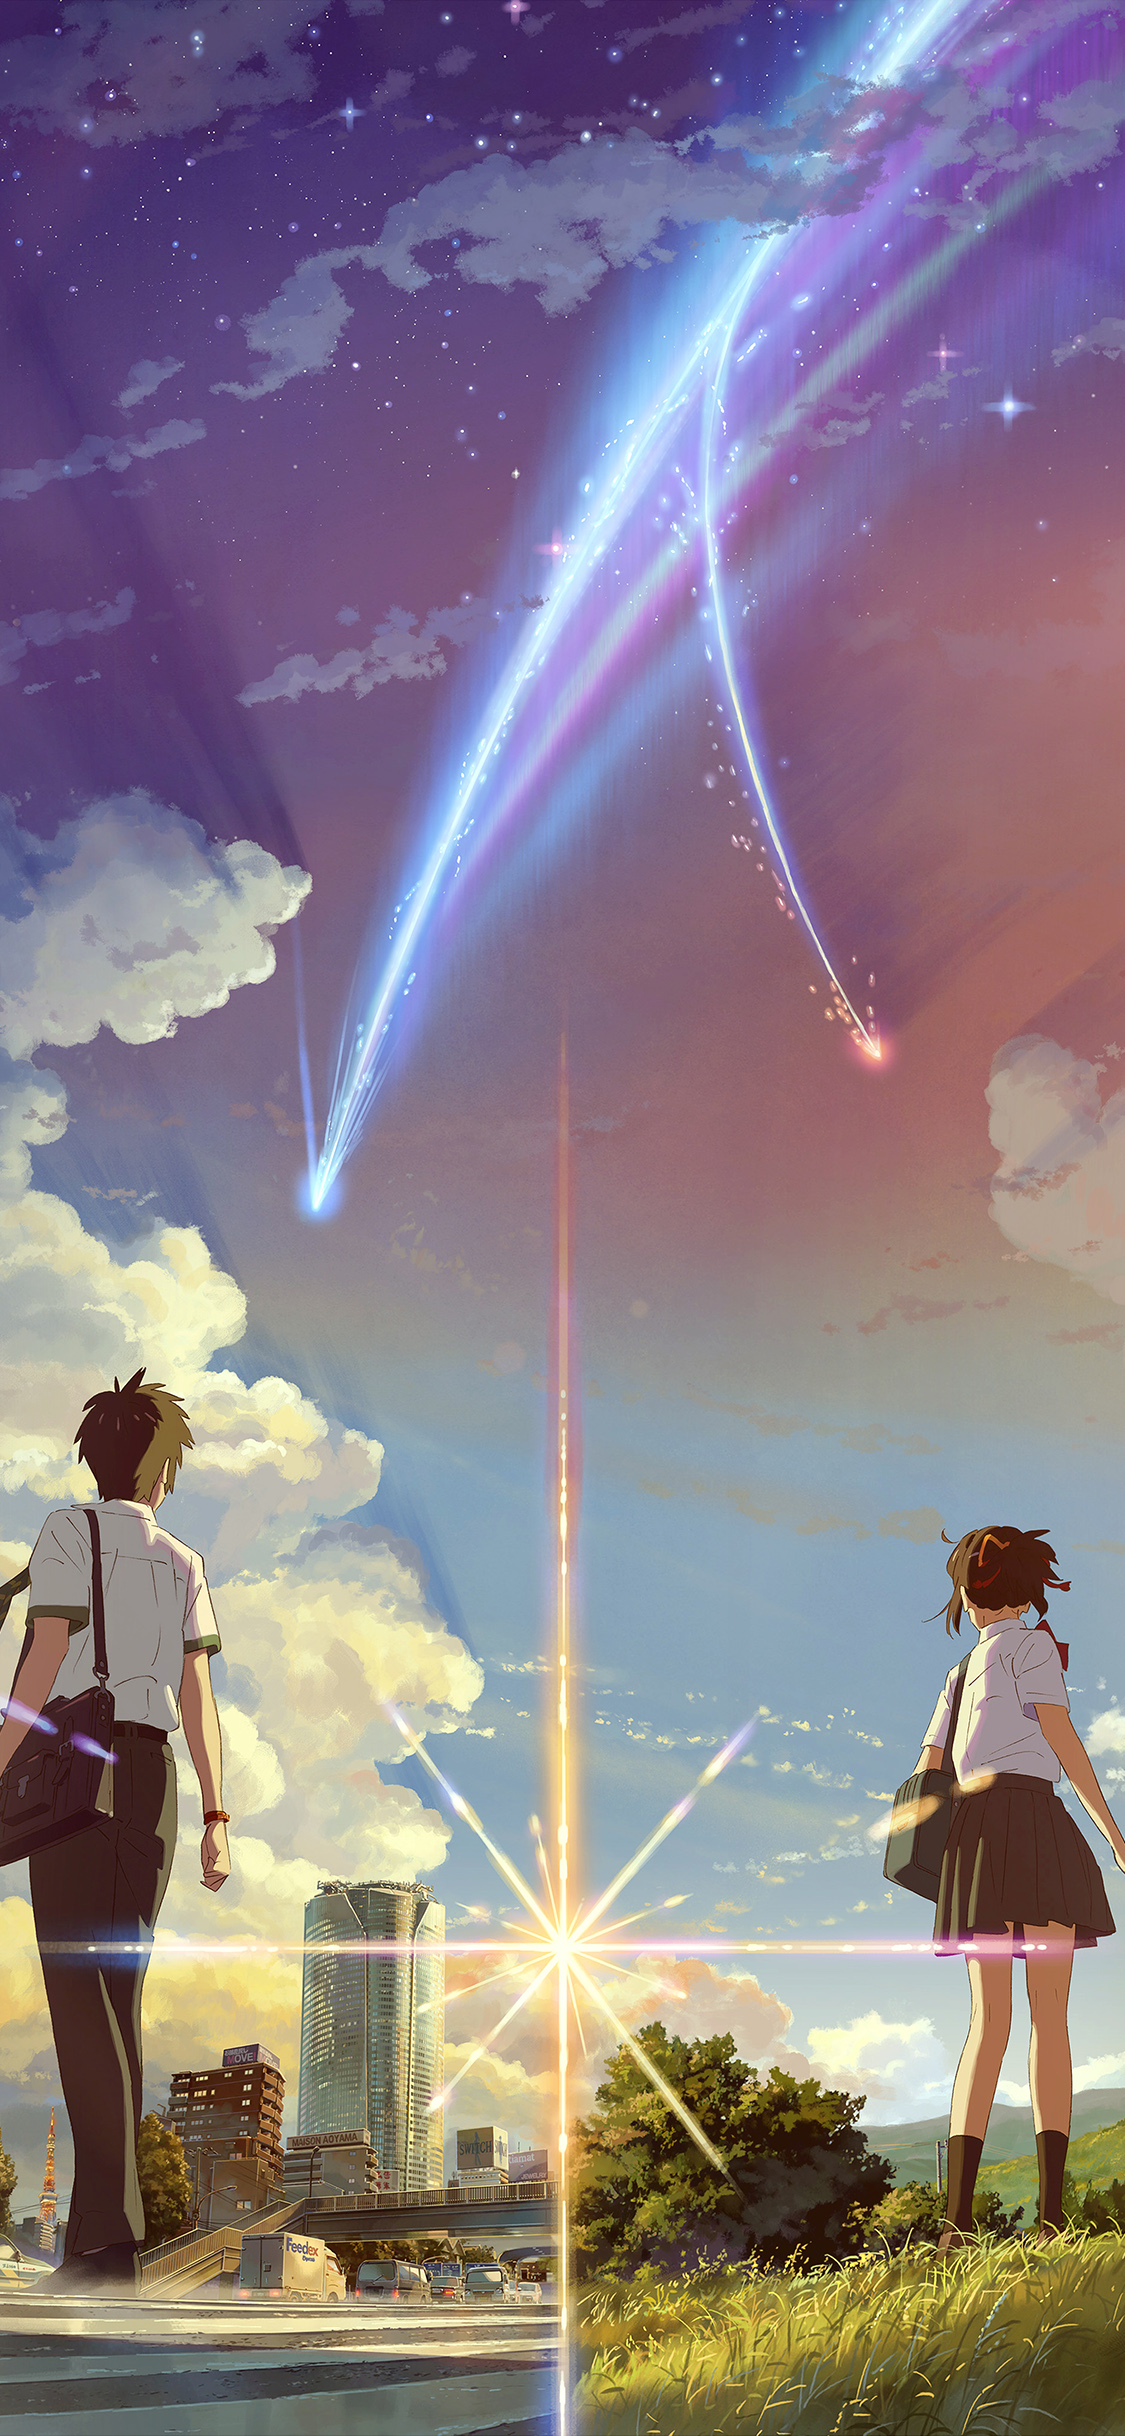 Ar29 Boy And Girl Anime Art Spring Cute Flare Wallpaper